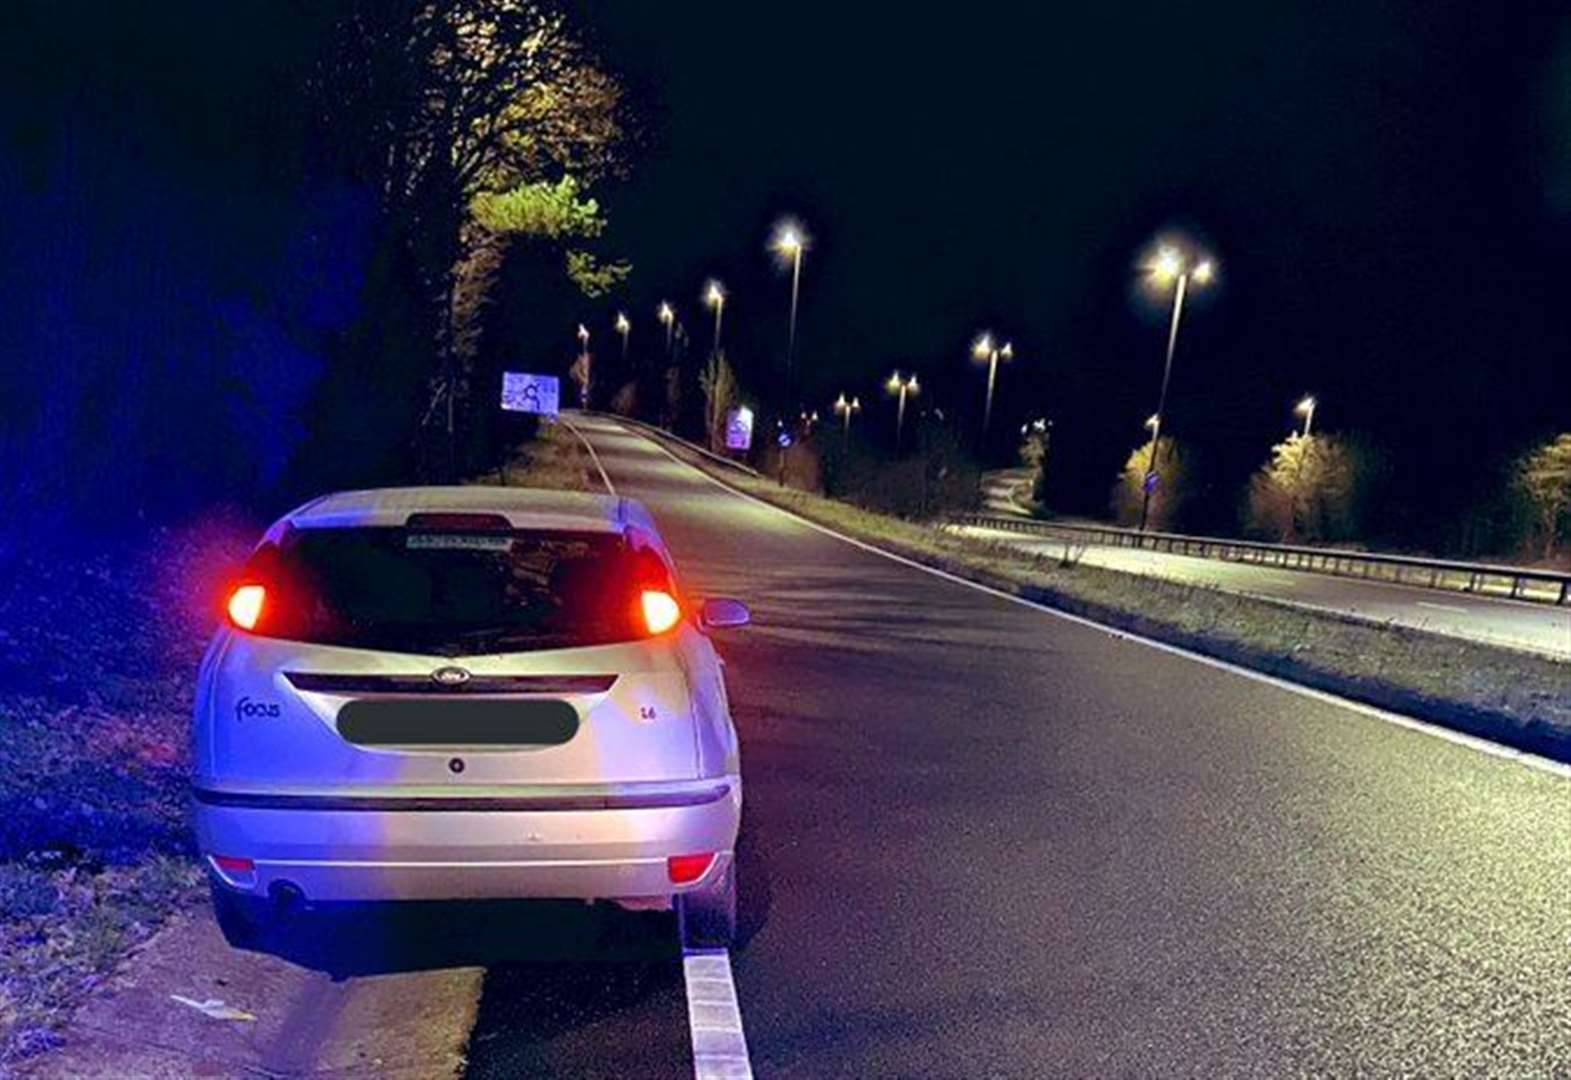 'Wrong way driver' charged by police